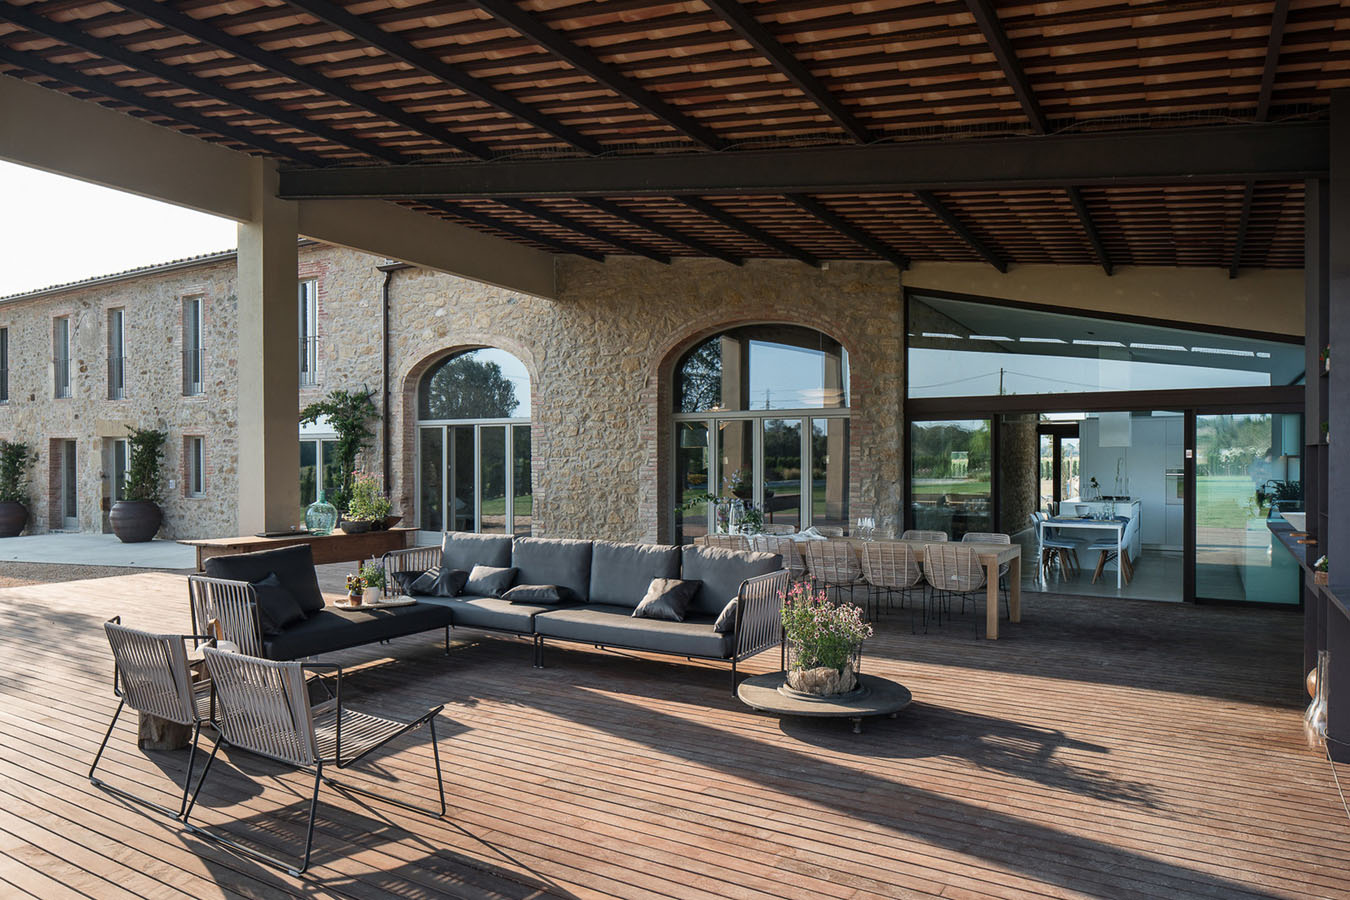 Girona_Farmhouse-interior_design-kontaktmag-12